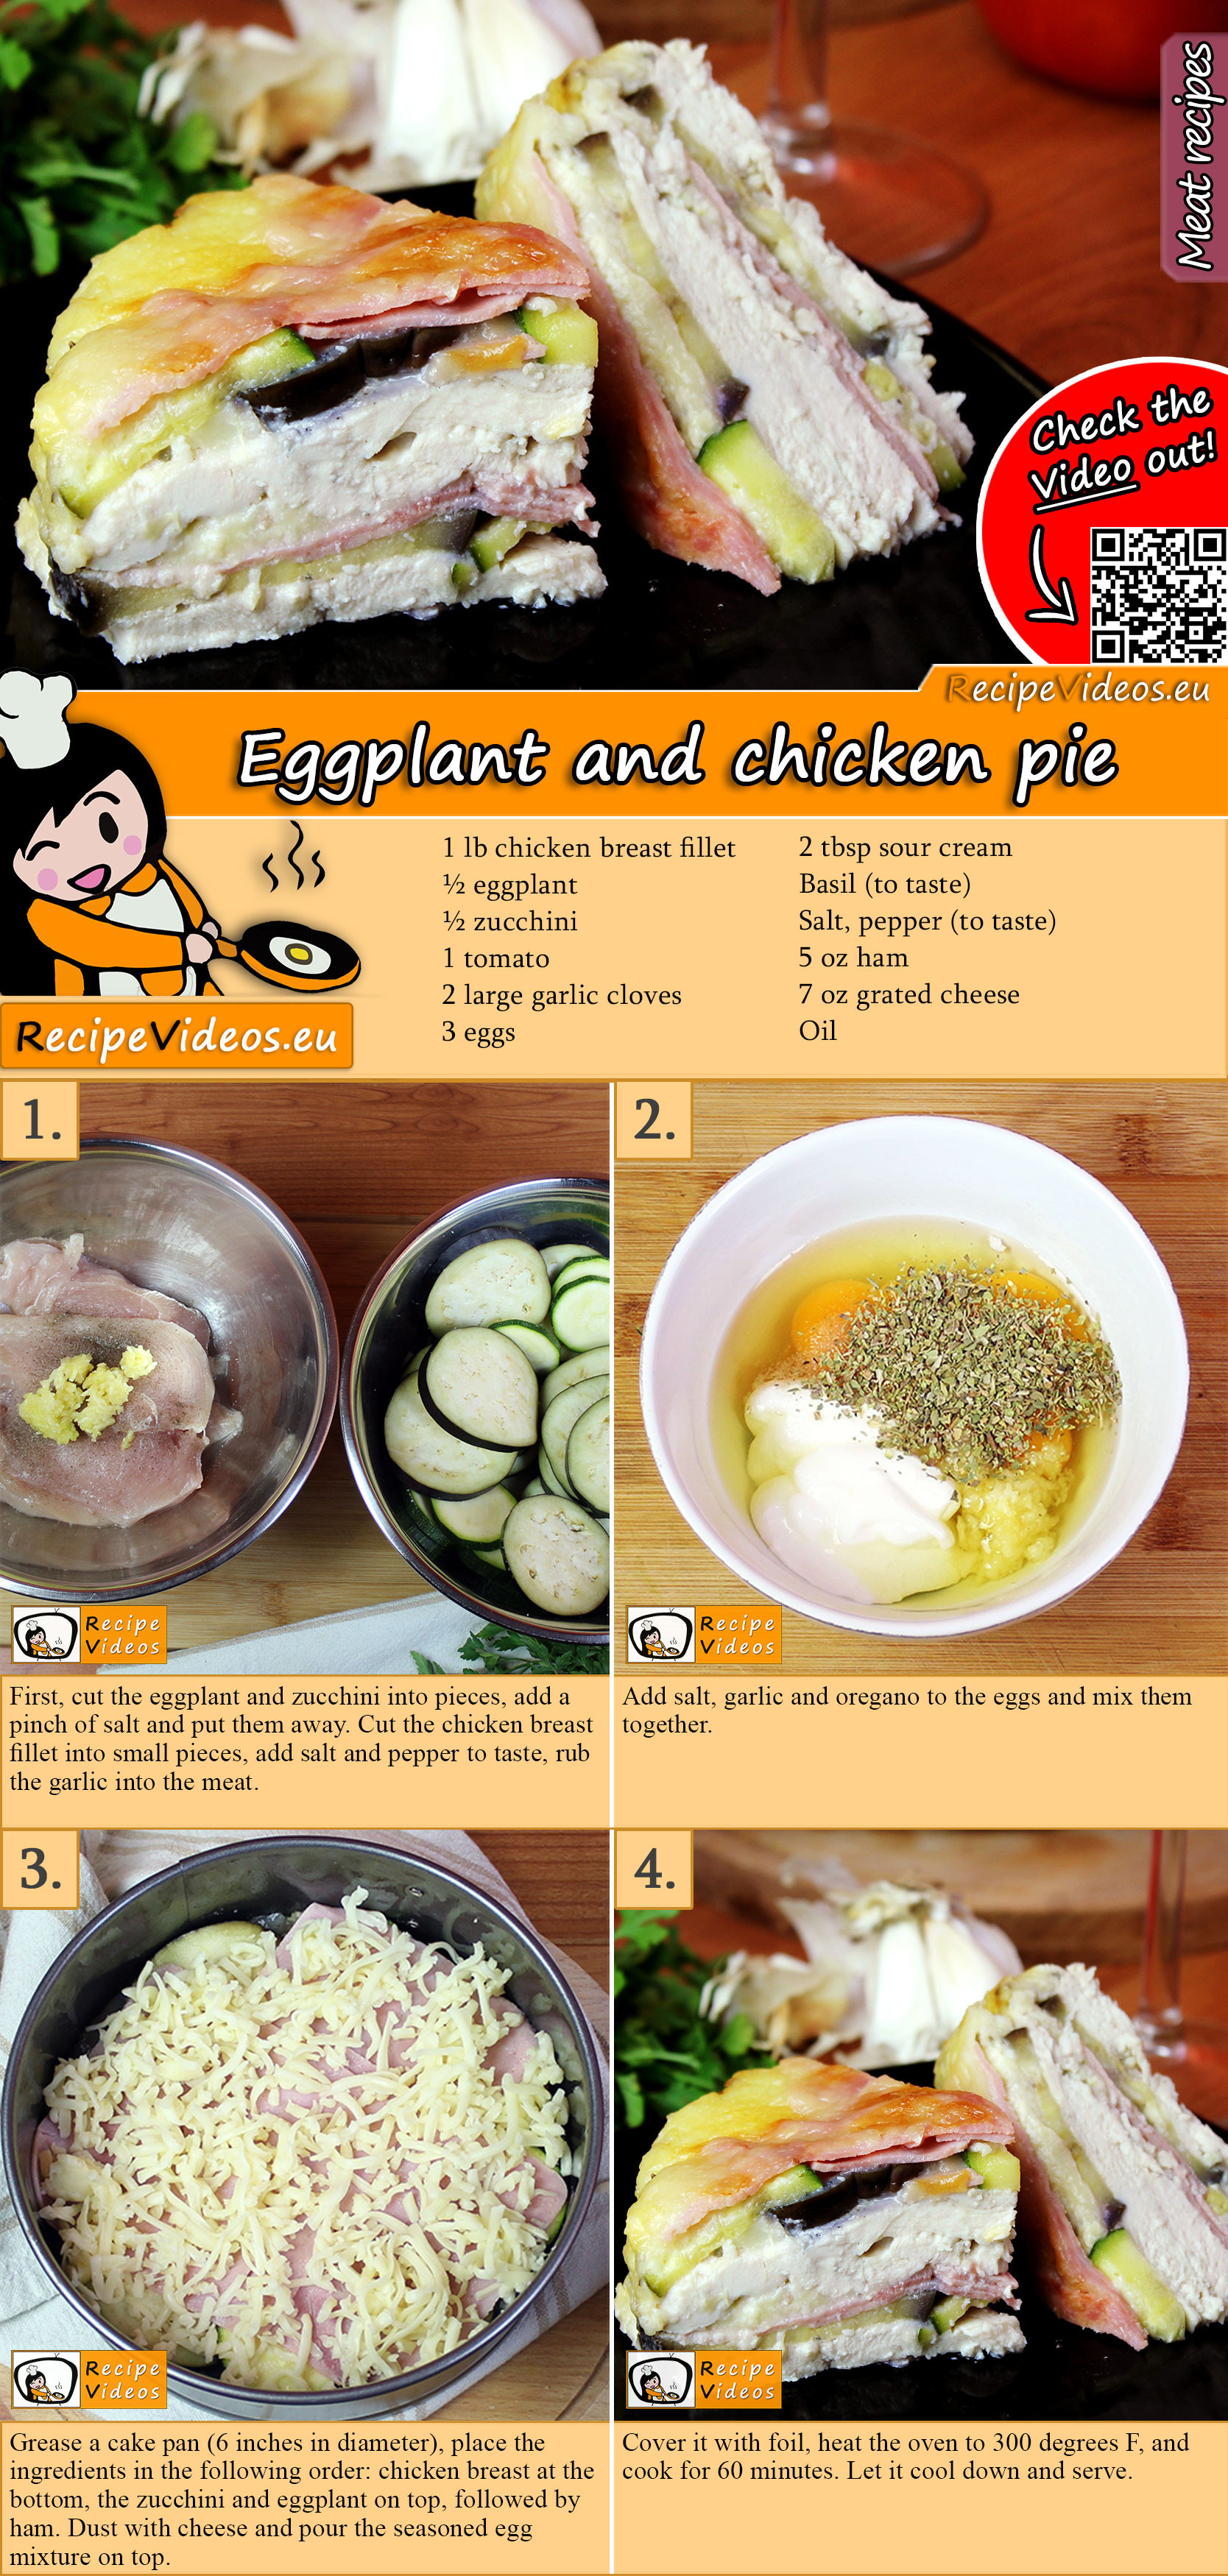 Eggplant and chicken pie recipe with video